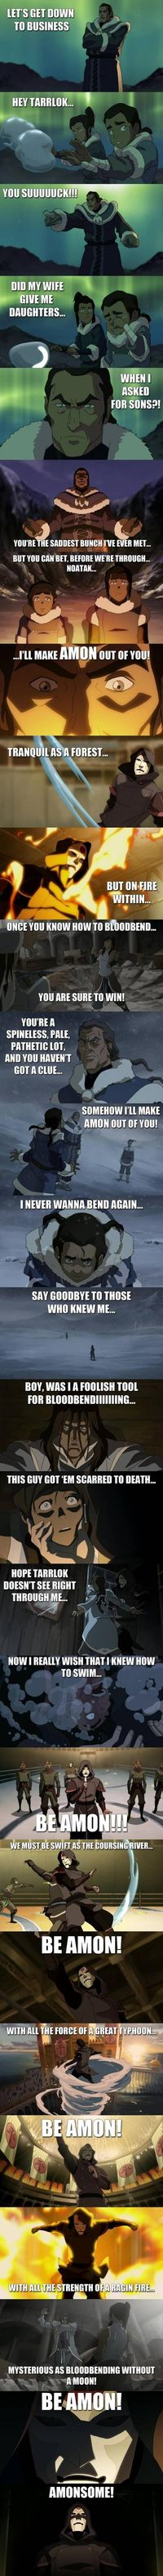 See more 'Avatar: The Last Airbender / The Legend of Korra' images on Know Your Meme!